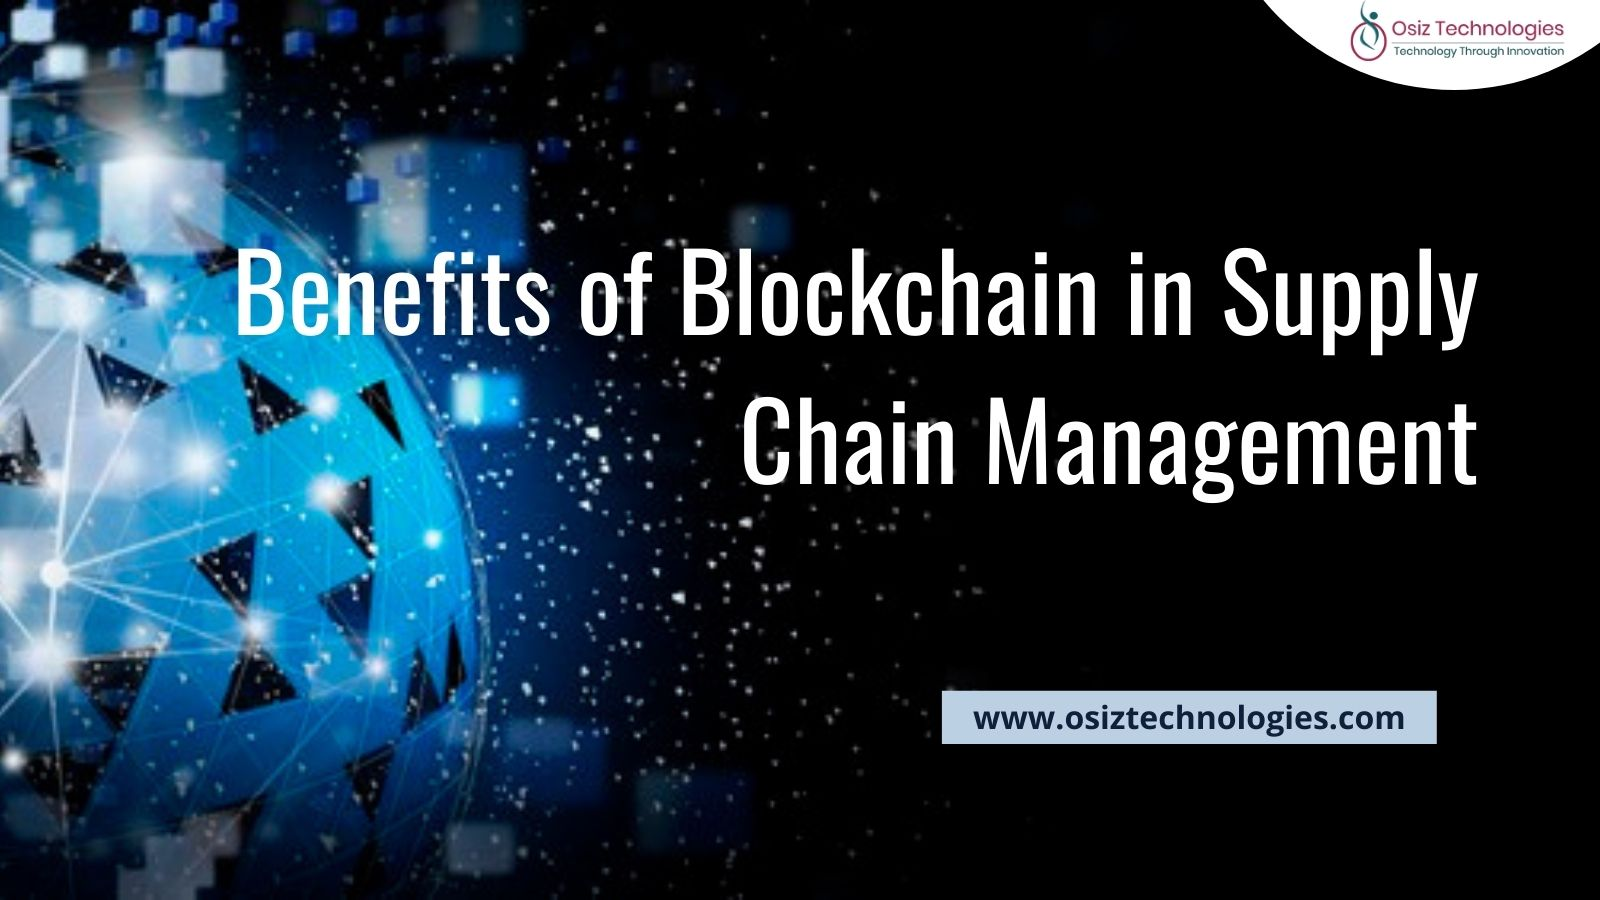 What are the benefits of Blockchain in Supply Chain Management?